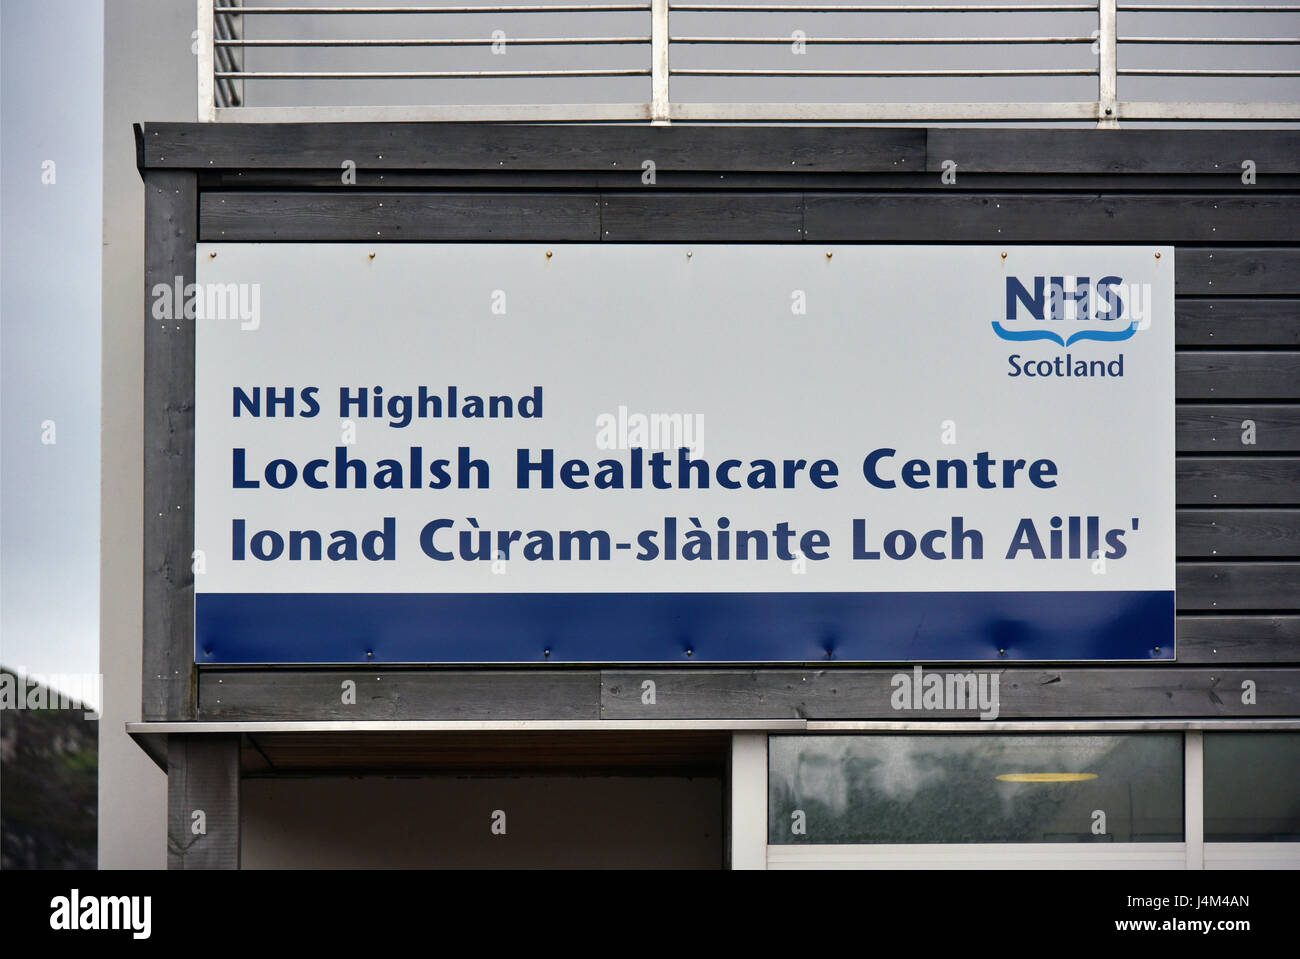 Signboard. NHS Highland, Lochalsh Healthcare Centre, Station Road, Kyle of Lochalsh, Ross and Cromarty, Scotland, - Stock Image